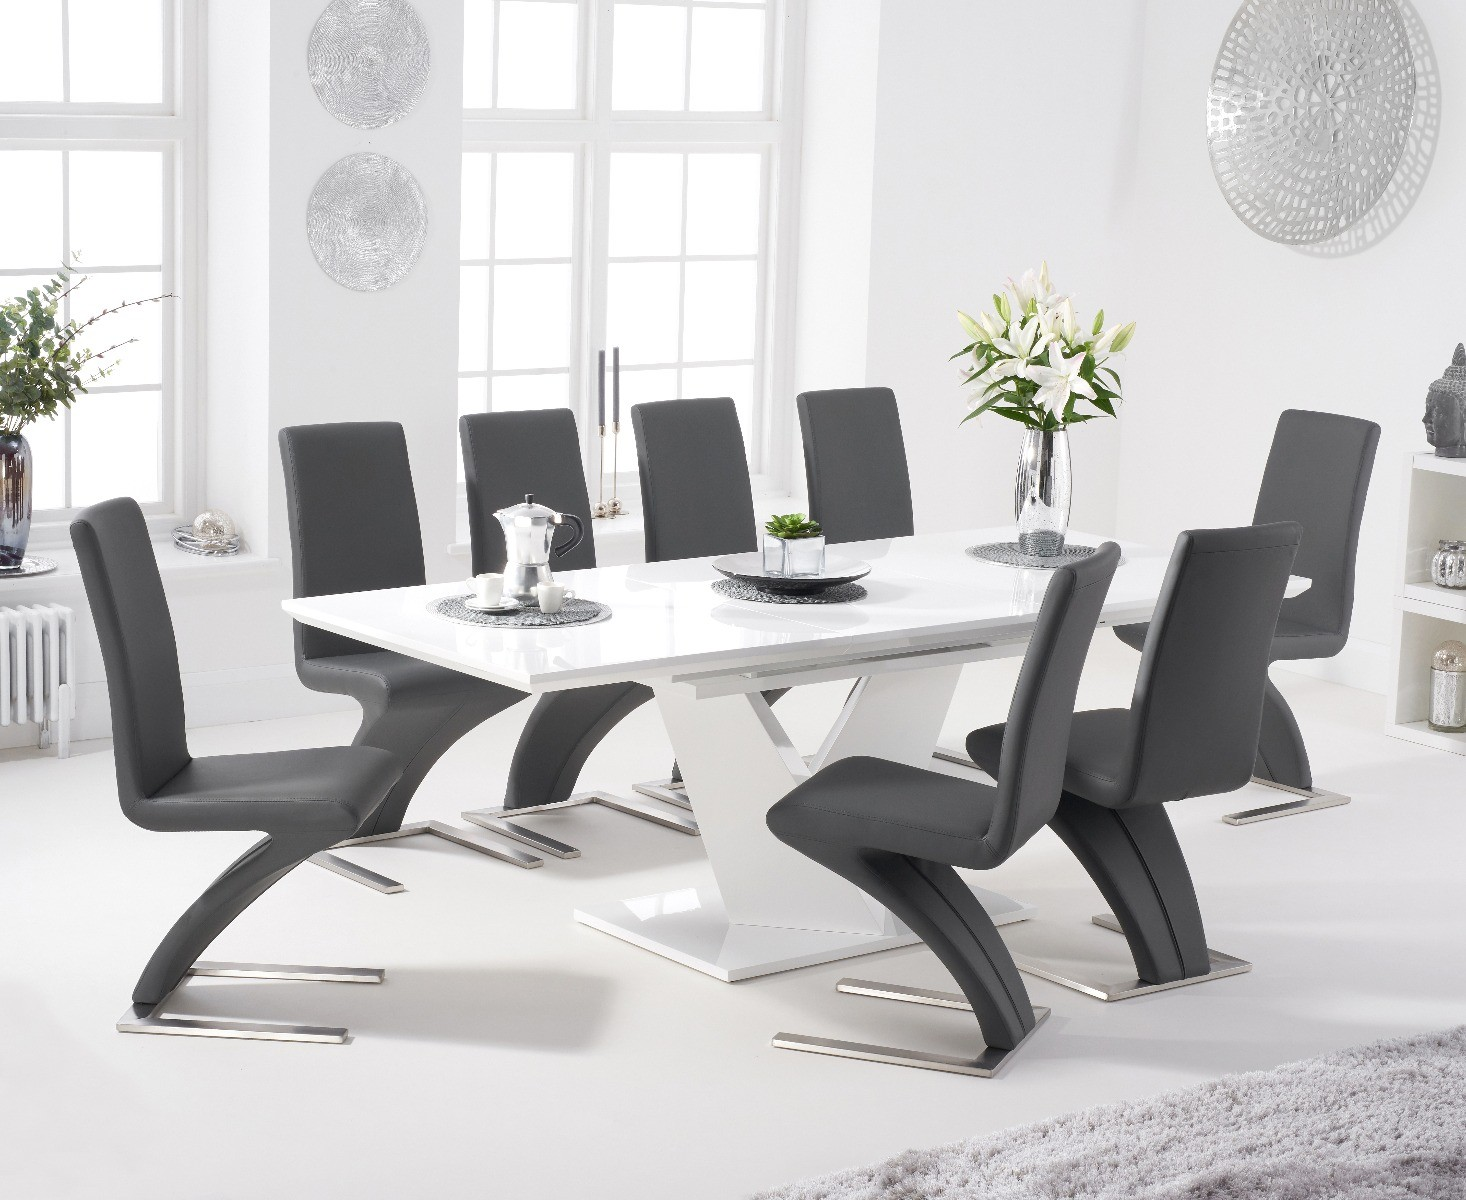 An image of Halo 160cm White High Gloss Extending Dining Table with Hampstead Faux Leather C...